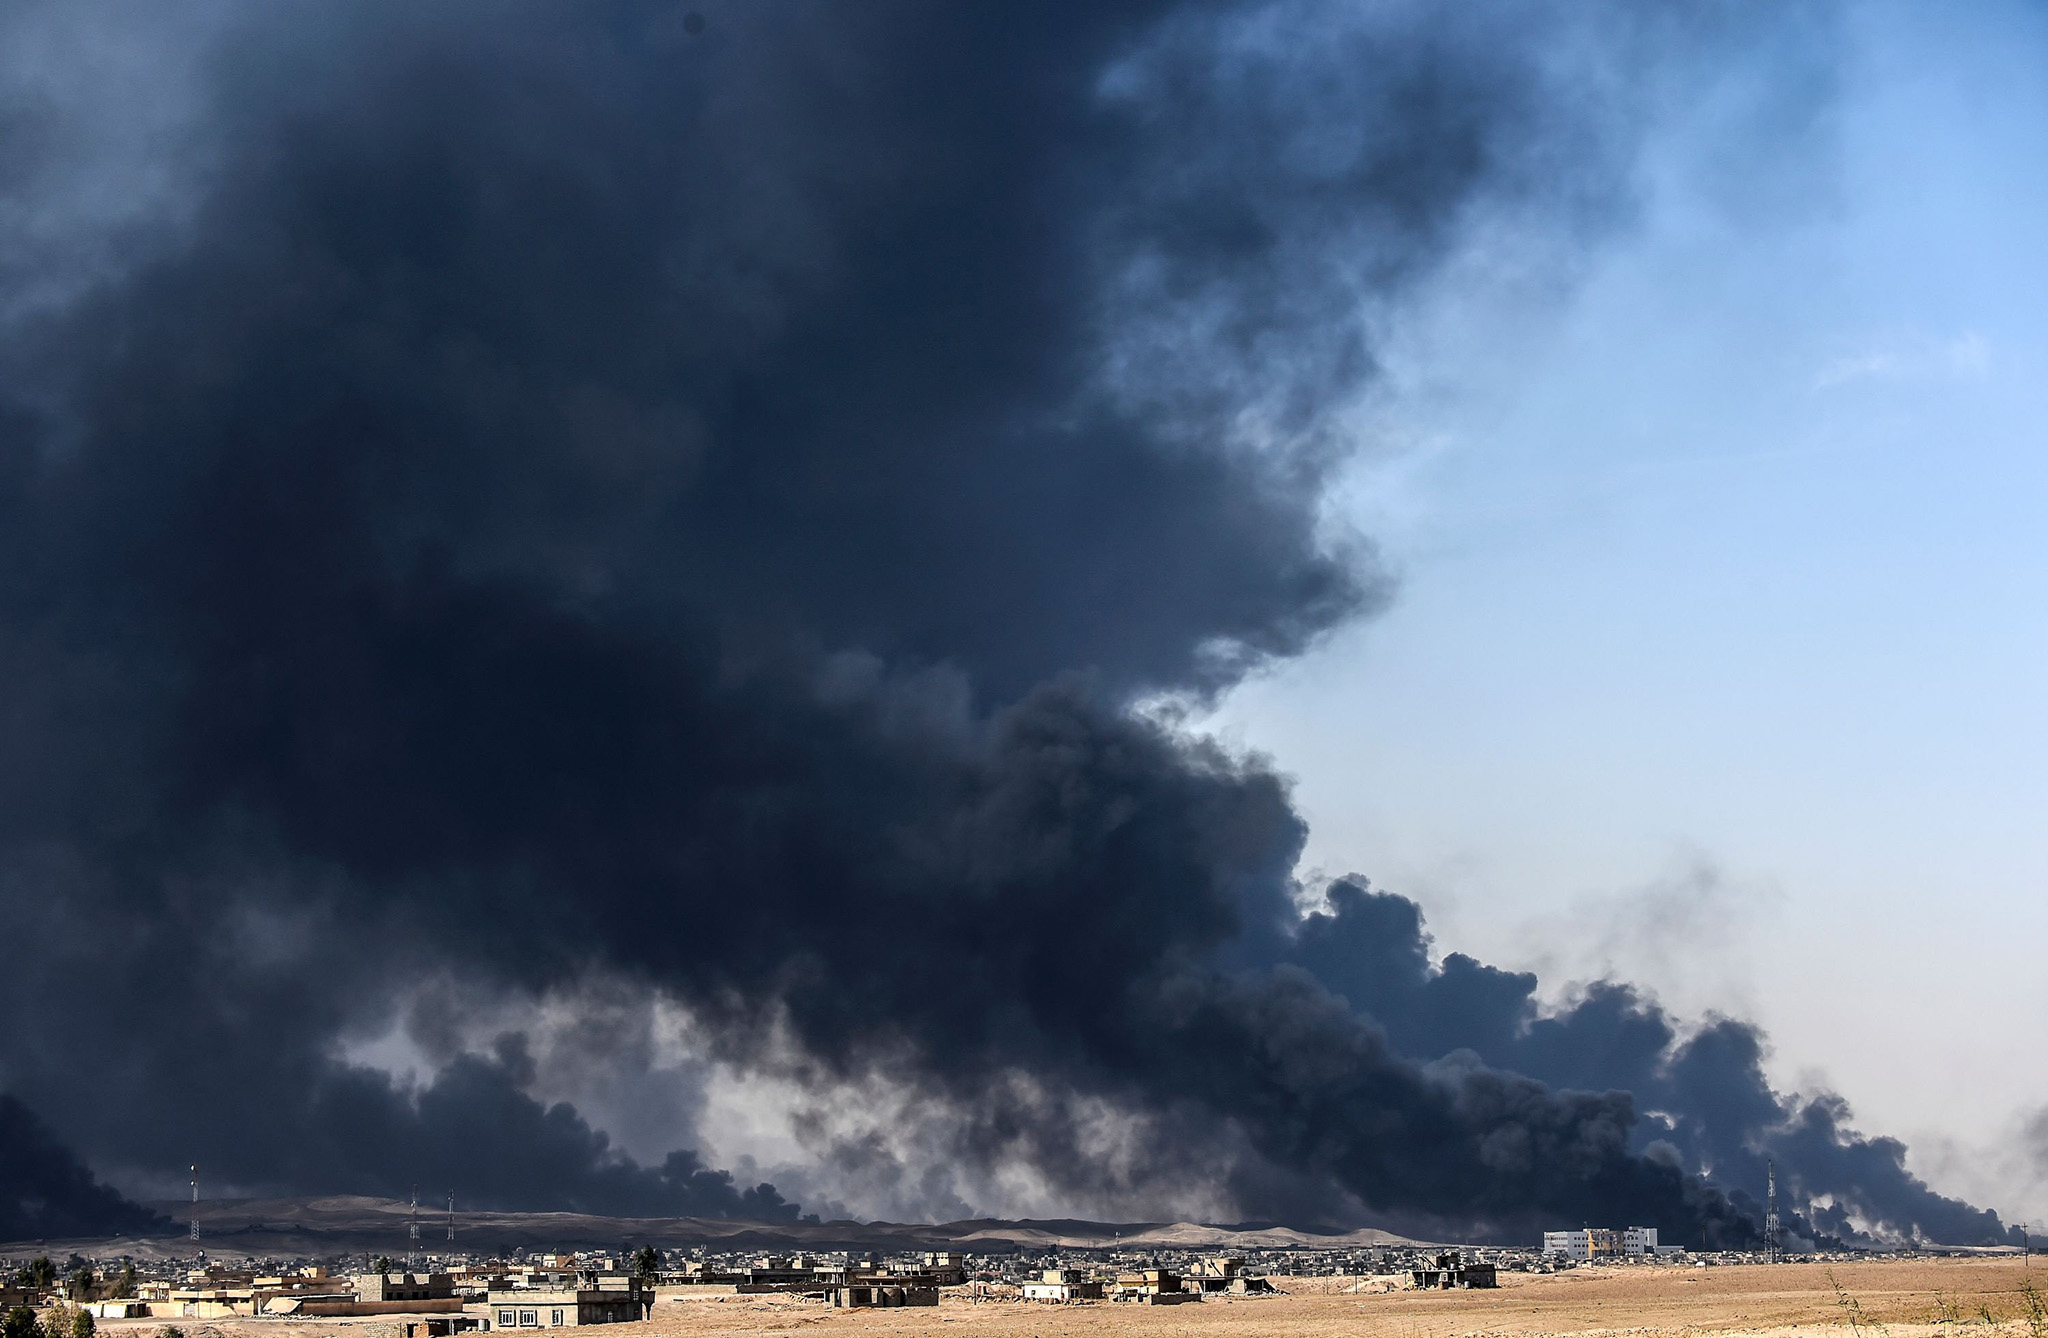 "Smoke rises from burning oil wells on October 18, 2016 near the town of Qayyarah, south of Mosul, during the operation to recapture the city from the Islamic State group. Tens of thousands of Iraqi forces were making gains on the Islamic State group in Mosul in an offensive US President Barack Obama warned would be a ""difficult fight"".  / AFP PHOTO / BULENT KILICBULENT KILIC/AFP/Getty Images"